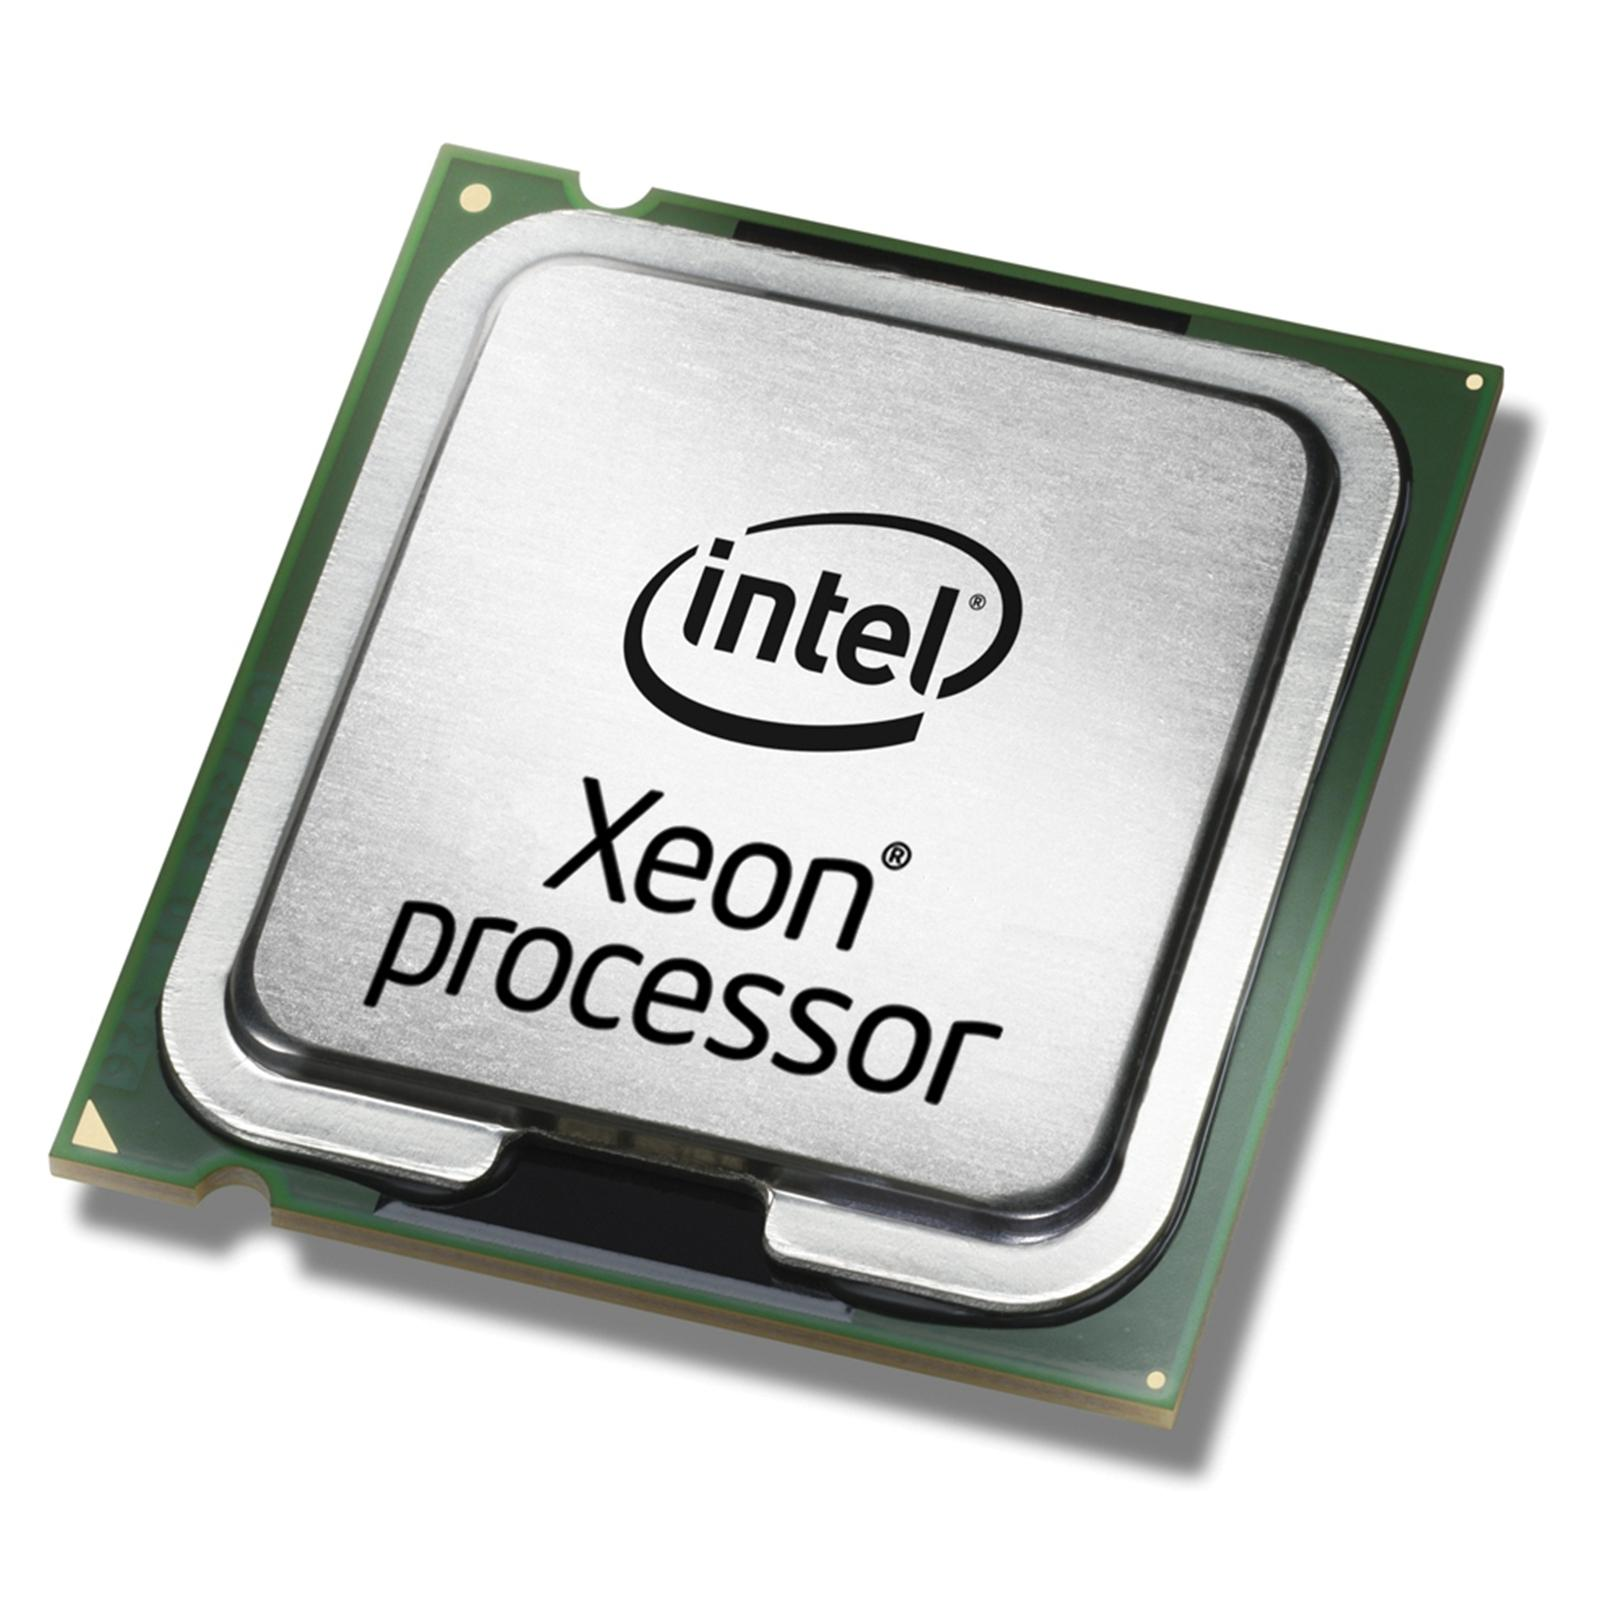 Exp Intel Xeon Proc E5-2640 v2 8C 2.0GHz 20MB C 1600MHz 95W